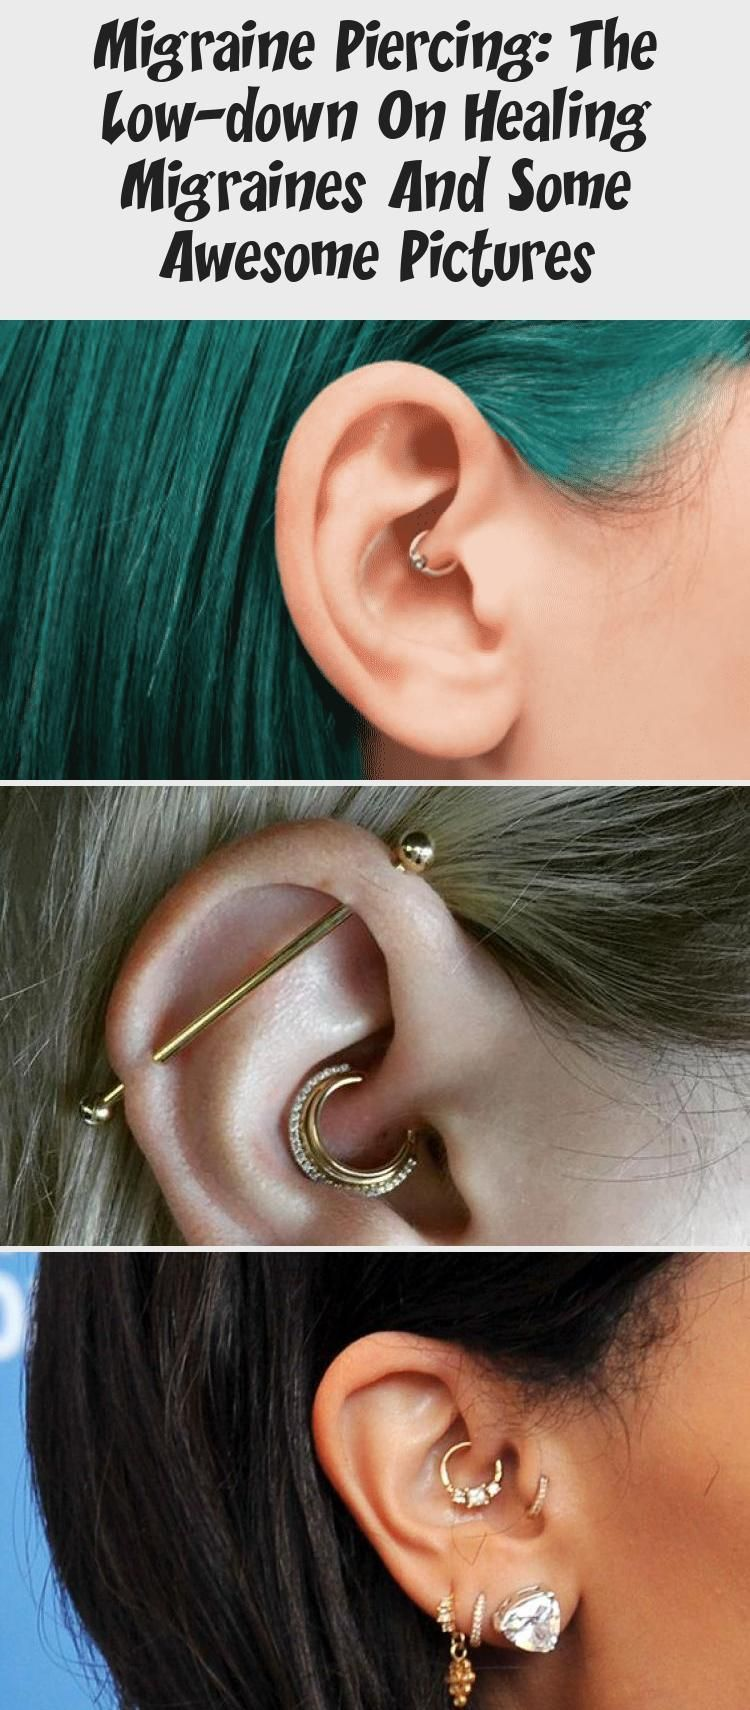 Migraine Piercing: The Low-down On Healing Migraines And Some Awesome Pictures - PIERCINGS ,  #Awesome #healing #Lowdown #Migraine #migraines #pictures #piercing #piercingbouche #PIERCINGS